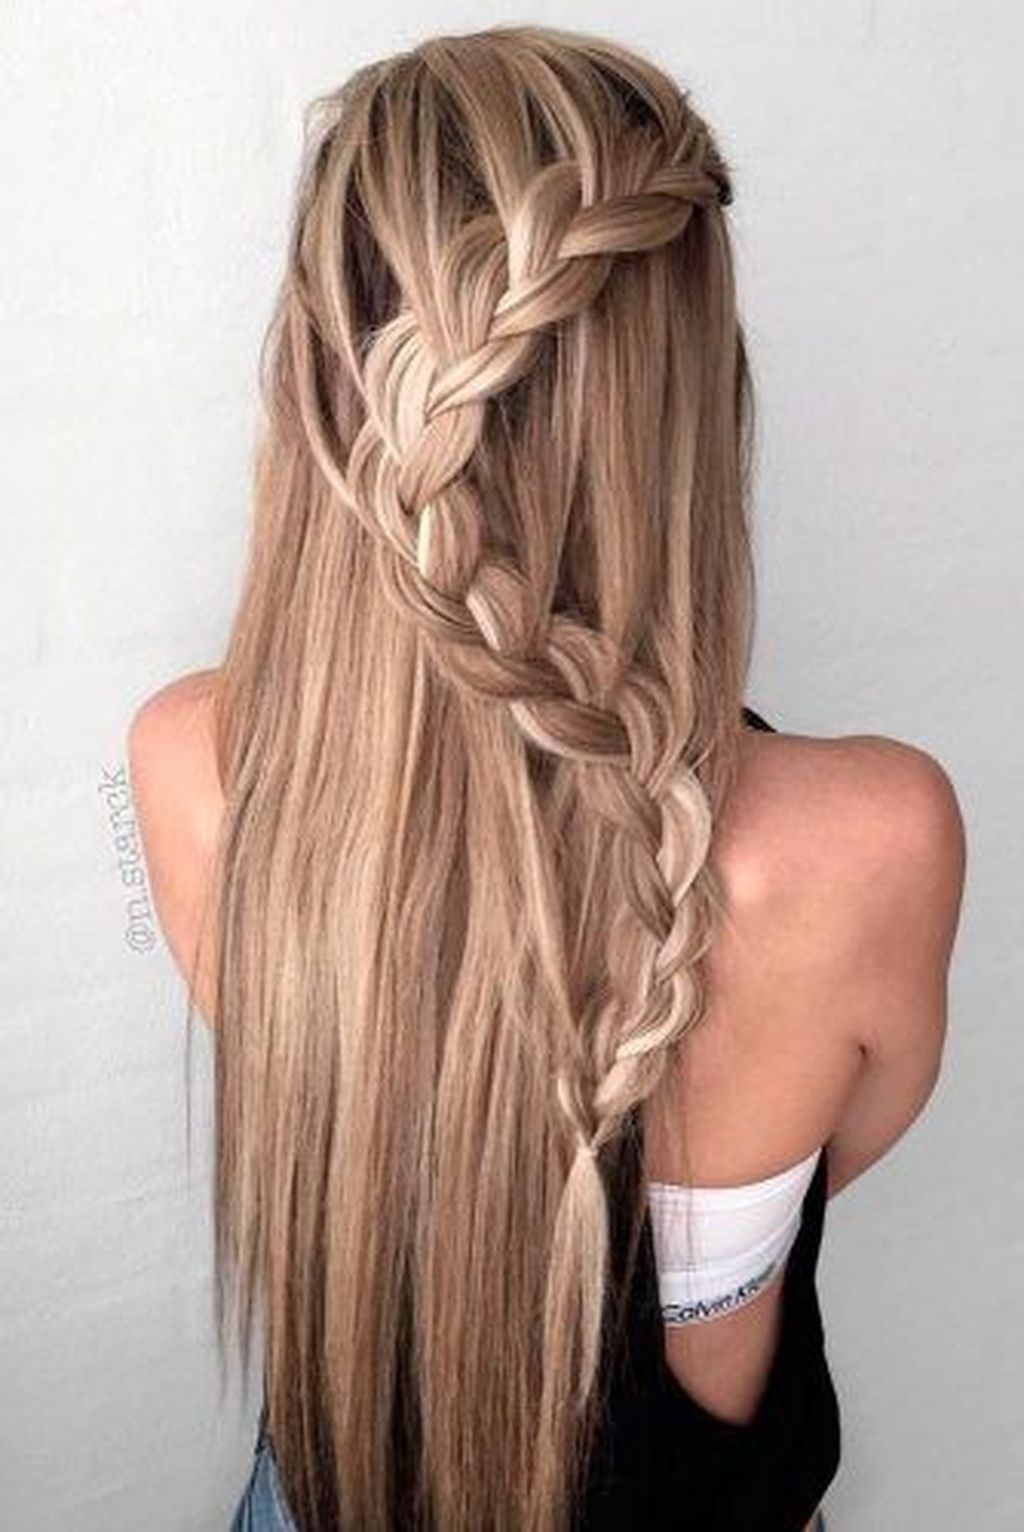 42 stylish casual prom hairstyles ideas for your beautiful